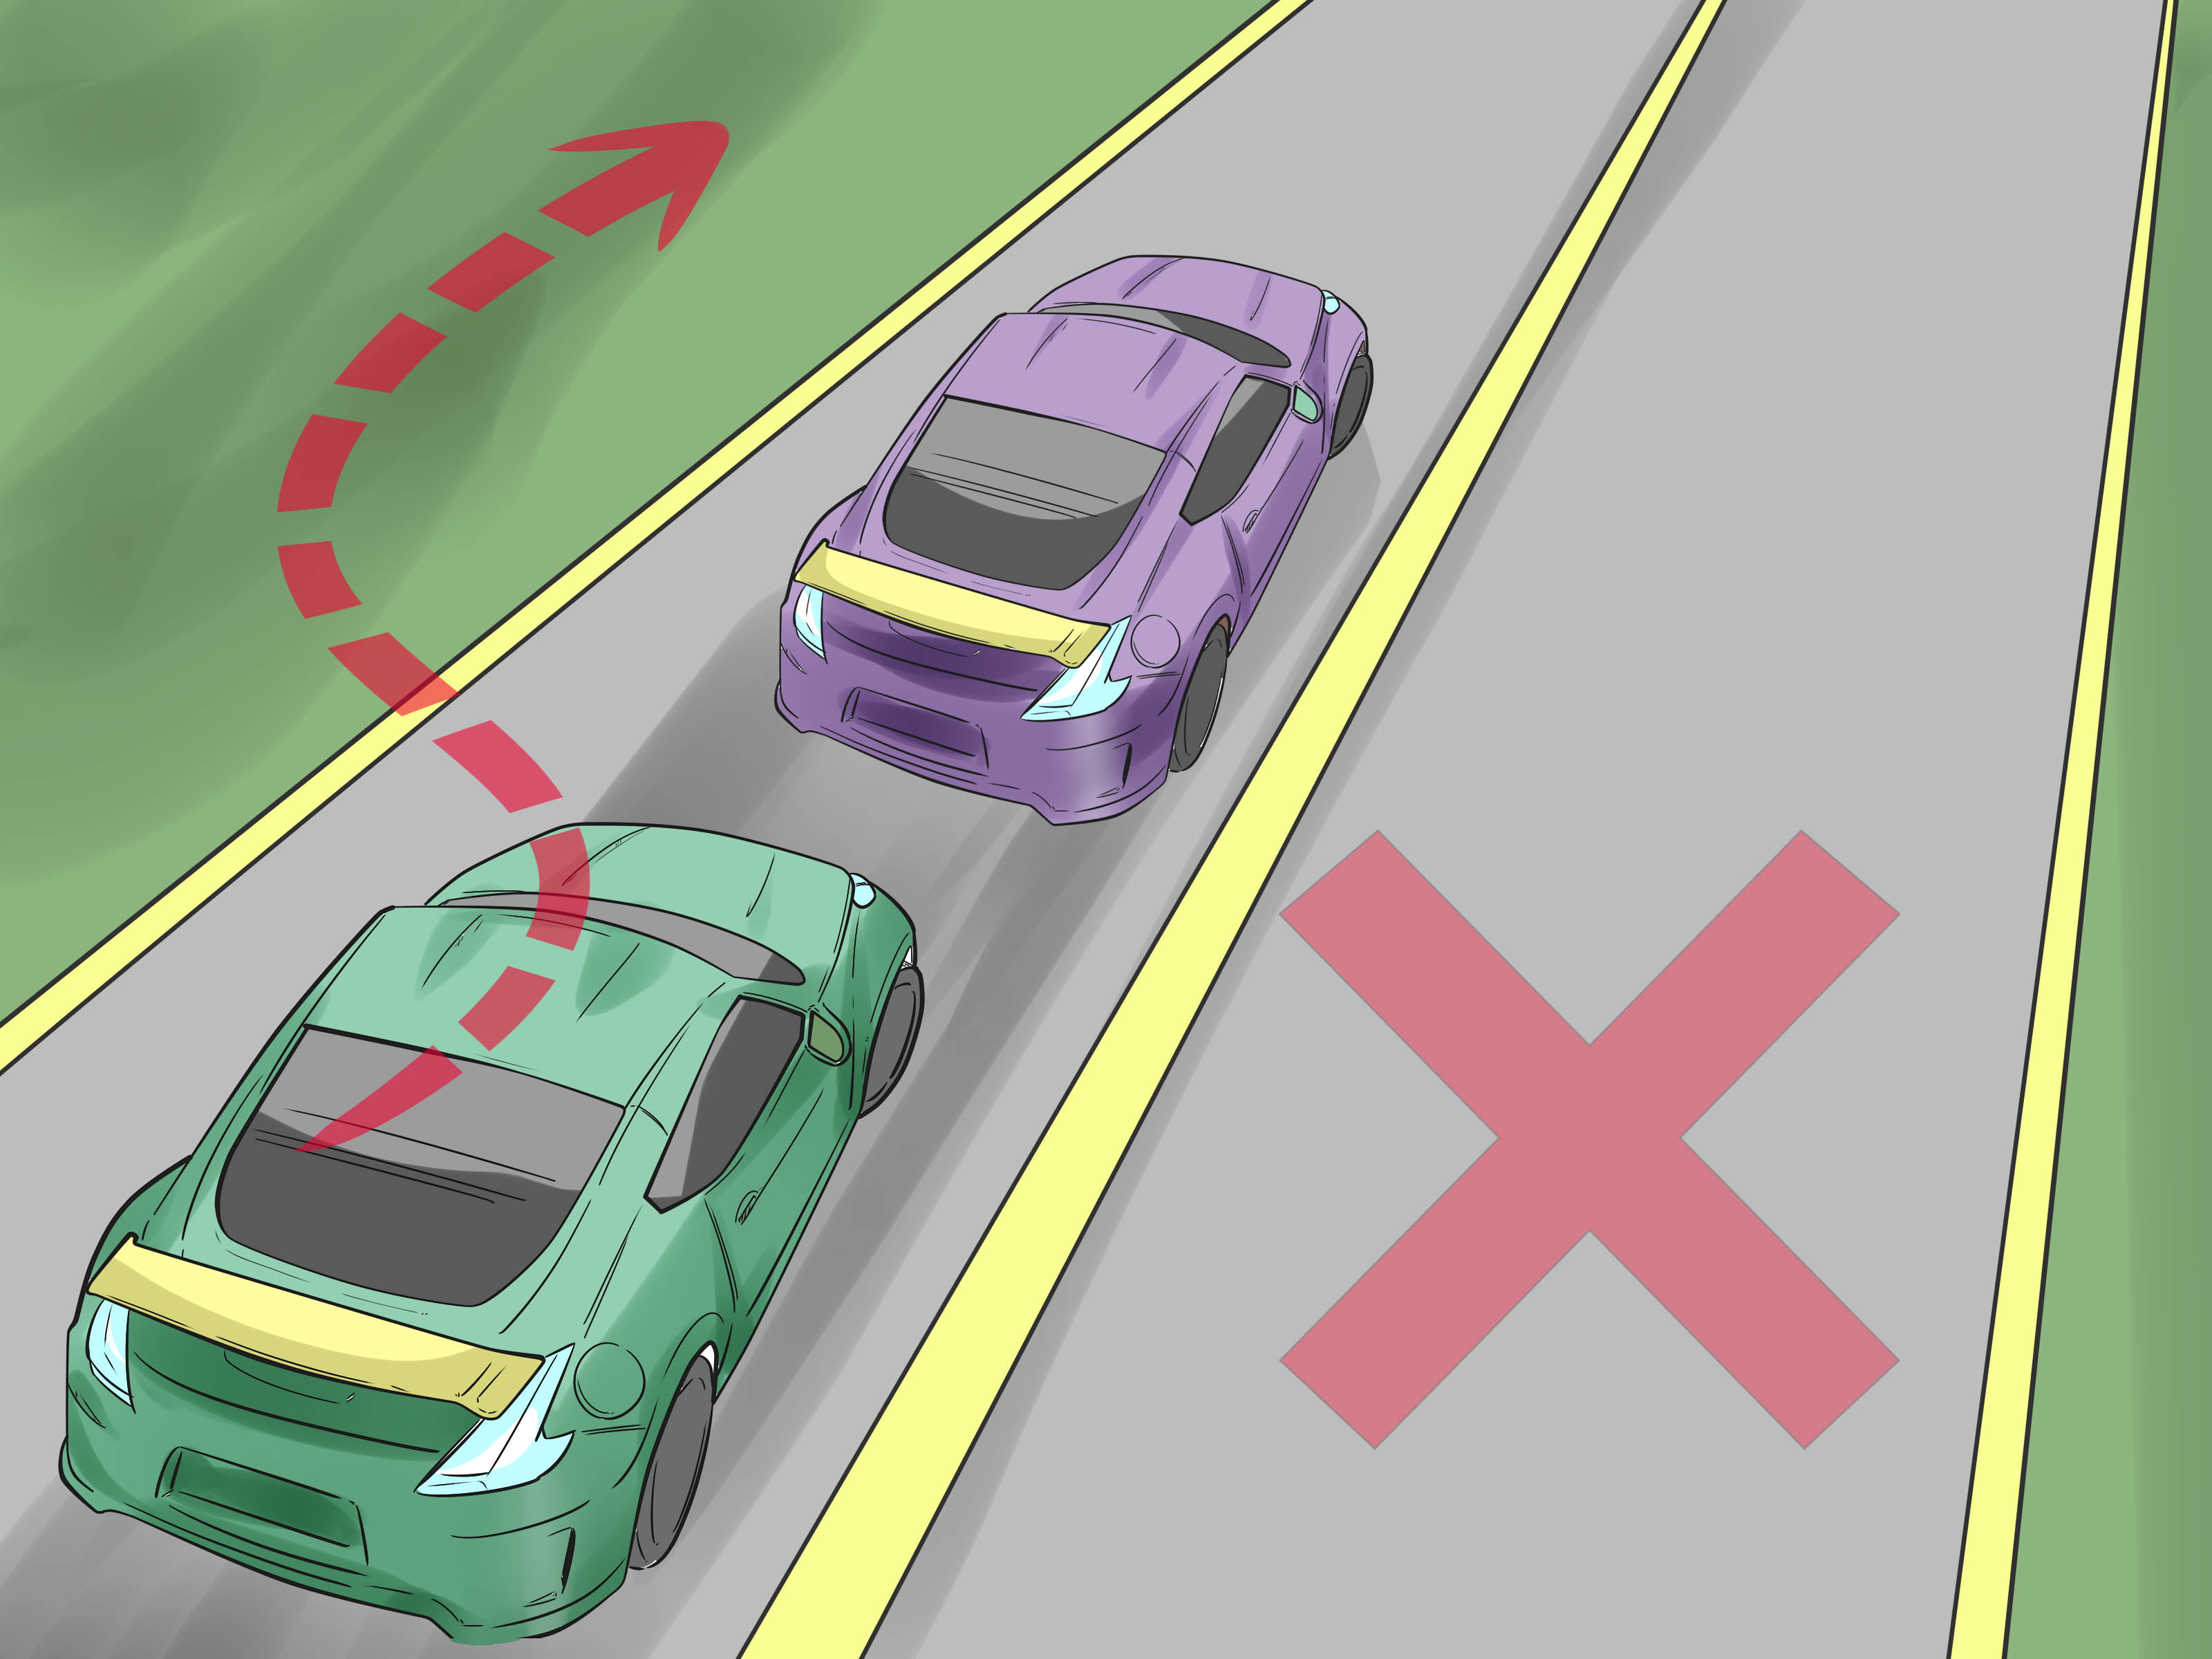 022 Better Driver Step Version Essay On Road Accident Wikipedia Imposing Full